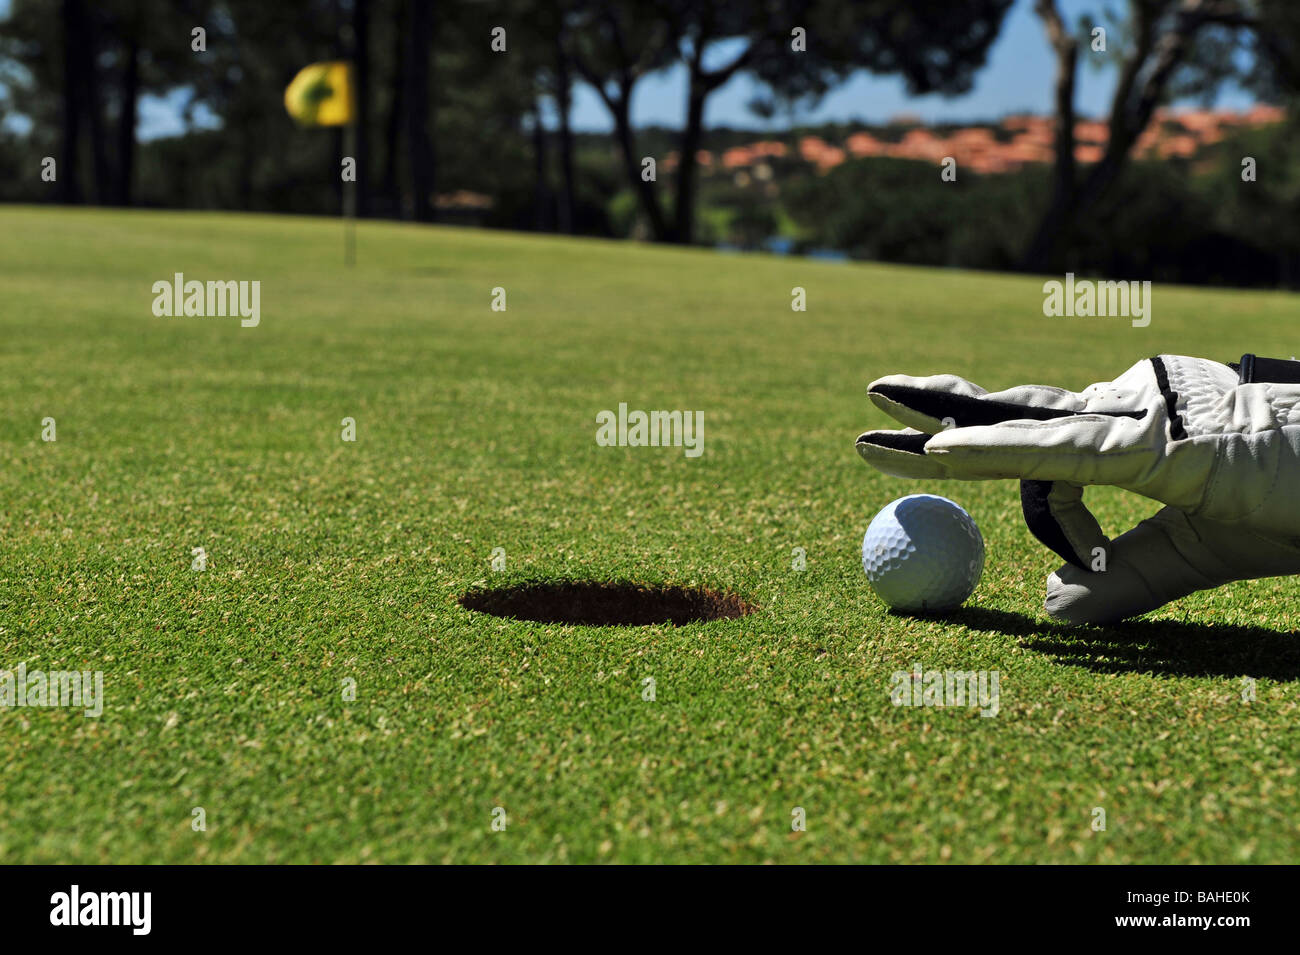 Flicking a golf ball into the hole - Stock Image